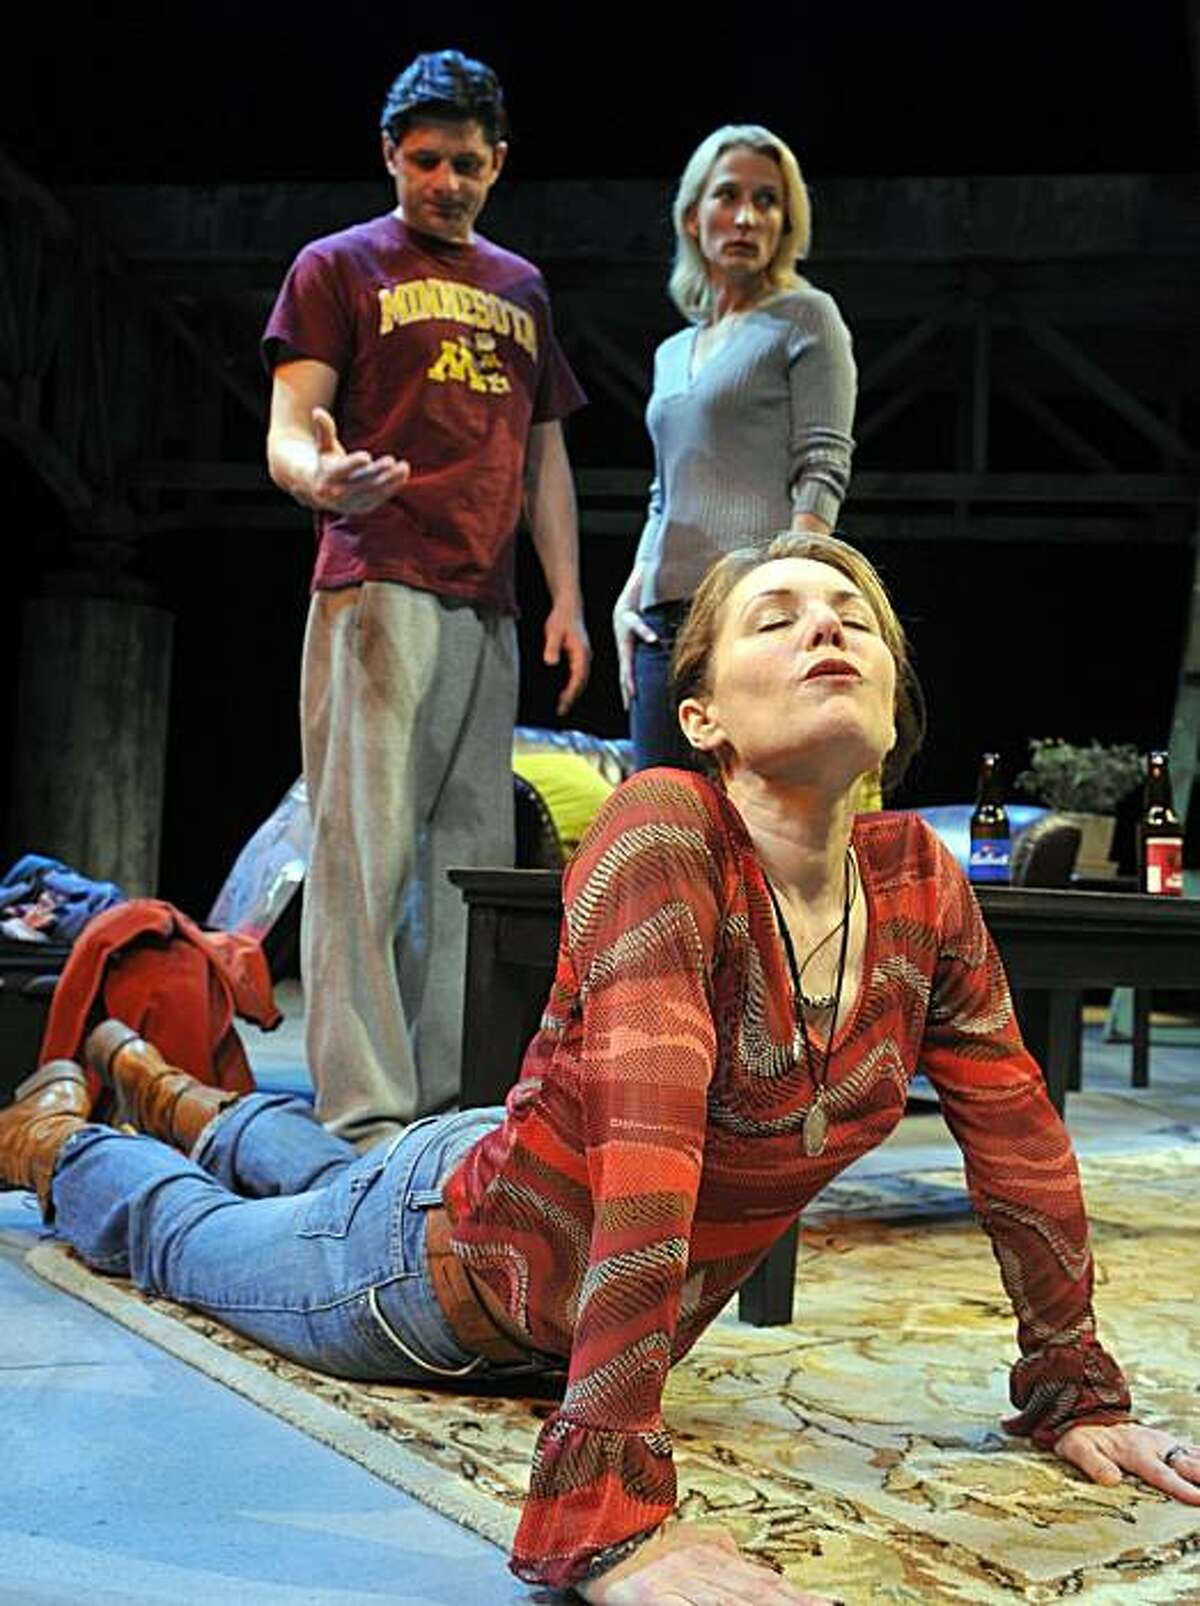 David (Gabriel Marin) and Hannah (Carrie Paff) confront the unexpected arrival of Susan (Amy Resnick, front) in Aurora Theatre's world premiere of Allison Moore's